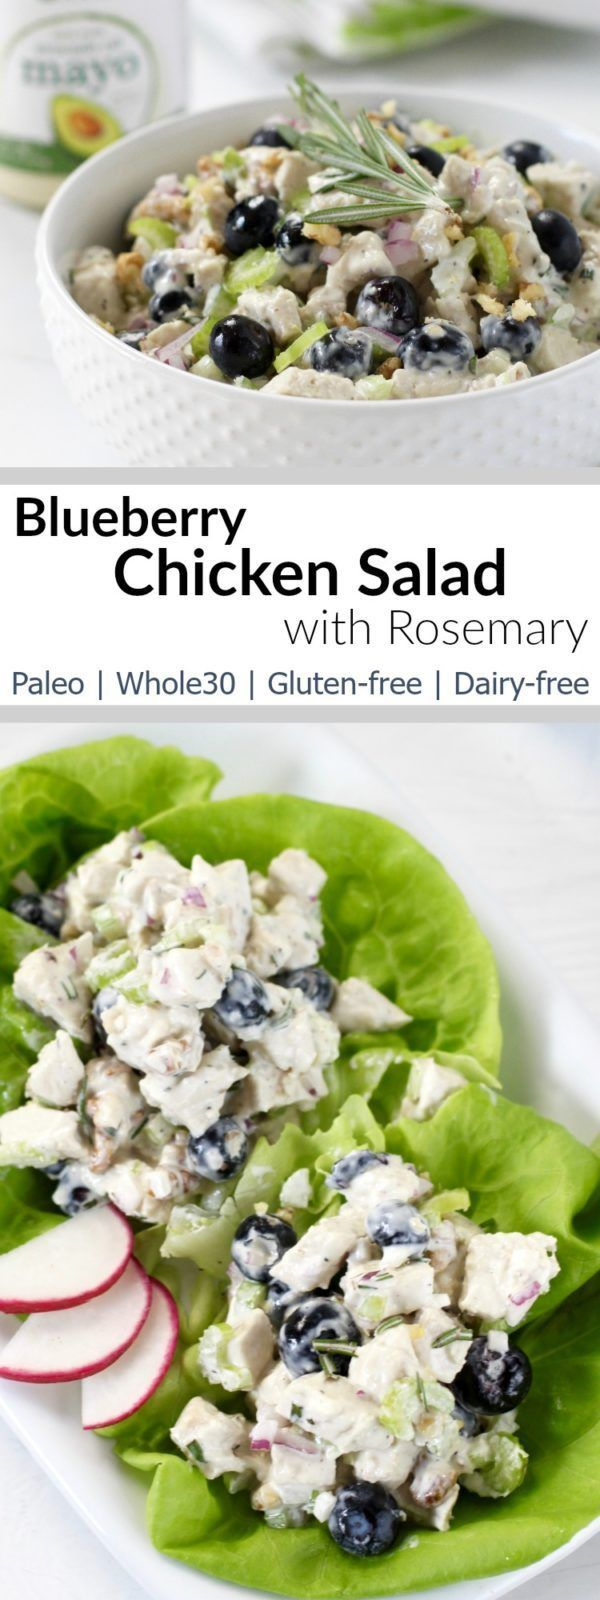 ur Blueberry Chicken Salad with Rosemary is easy enough for a weeknight dinner yet fancy enough for special occasions| Whole30| Paleo | Dairy-free | Gluten-free | http://therealfoodrds.com